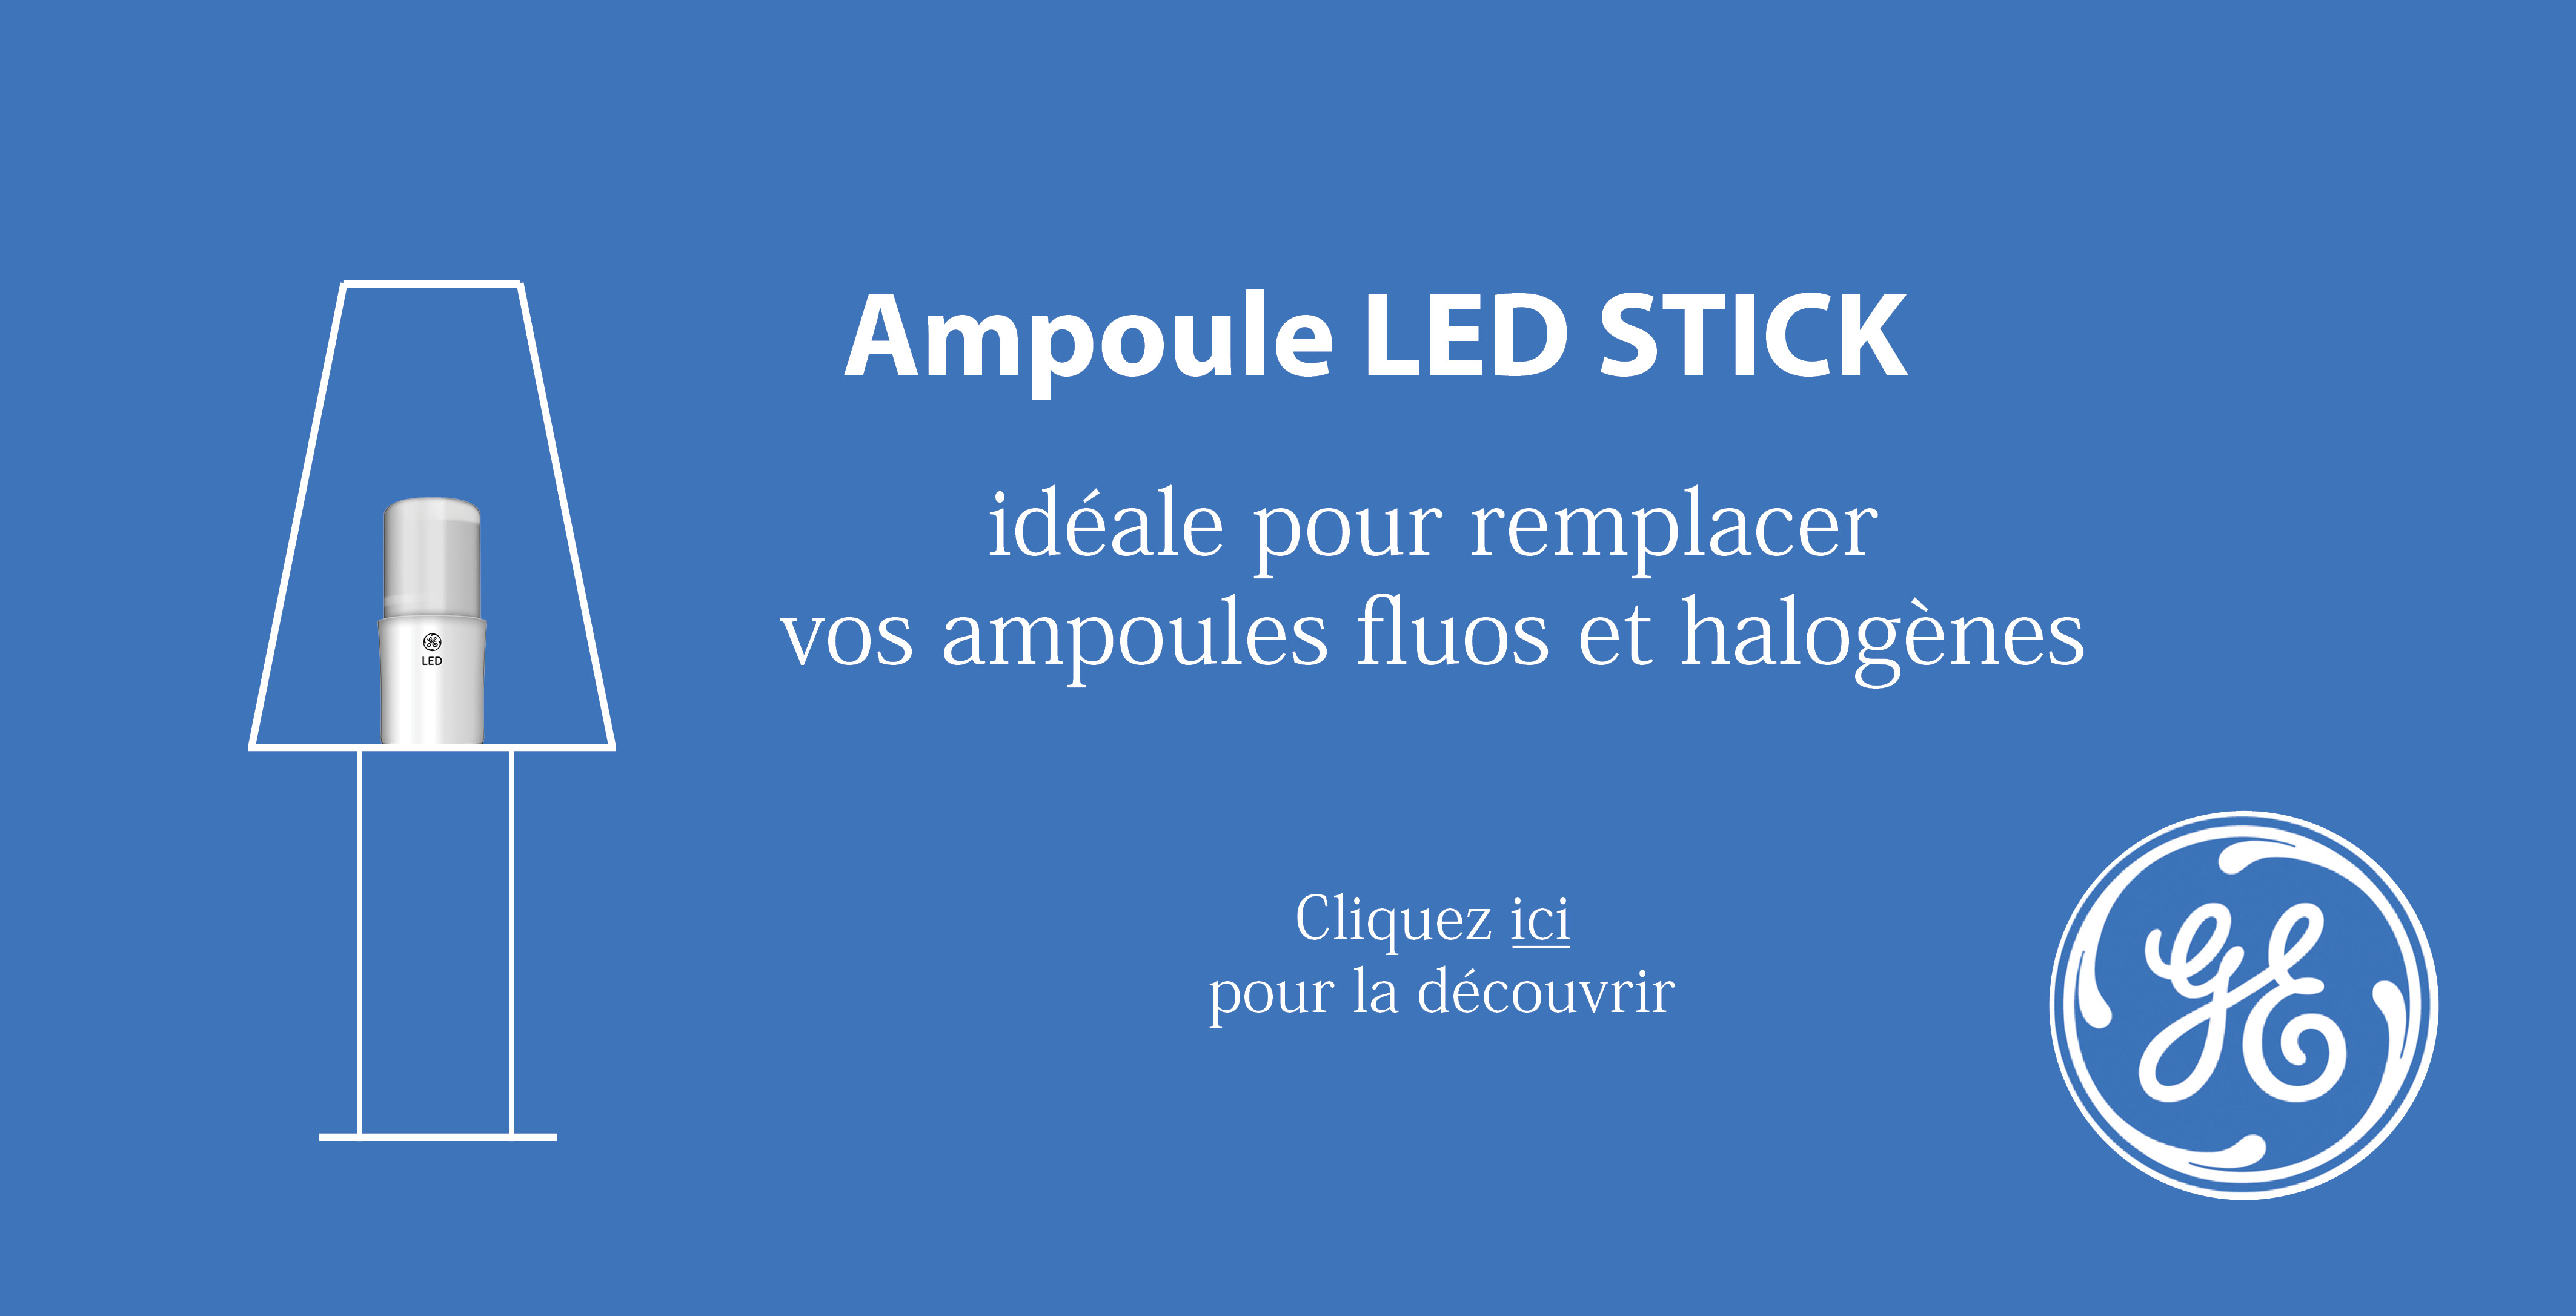 LED STICK GE LIGHTING